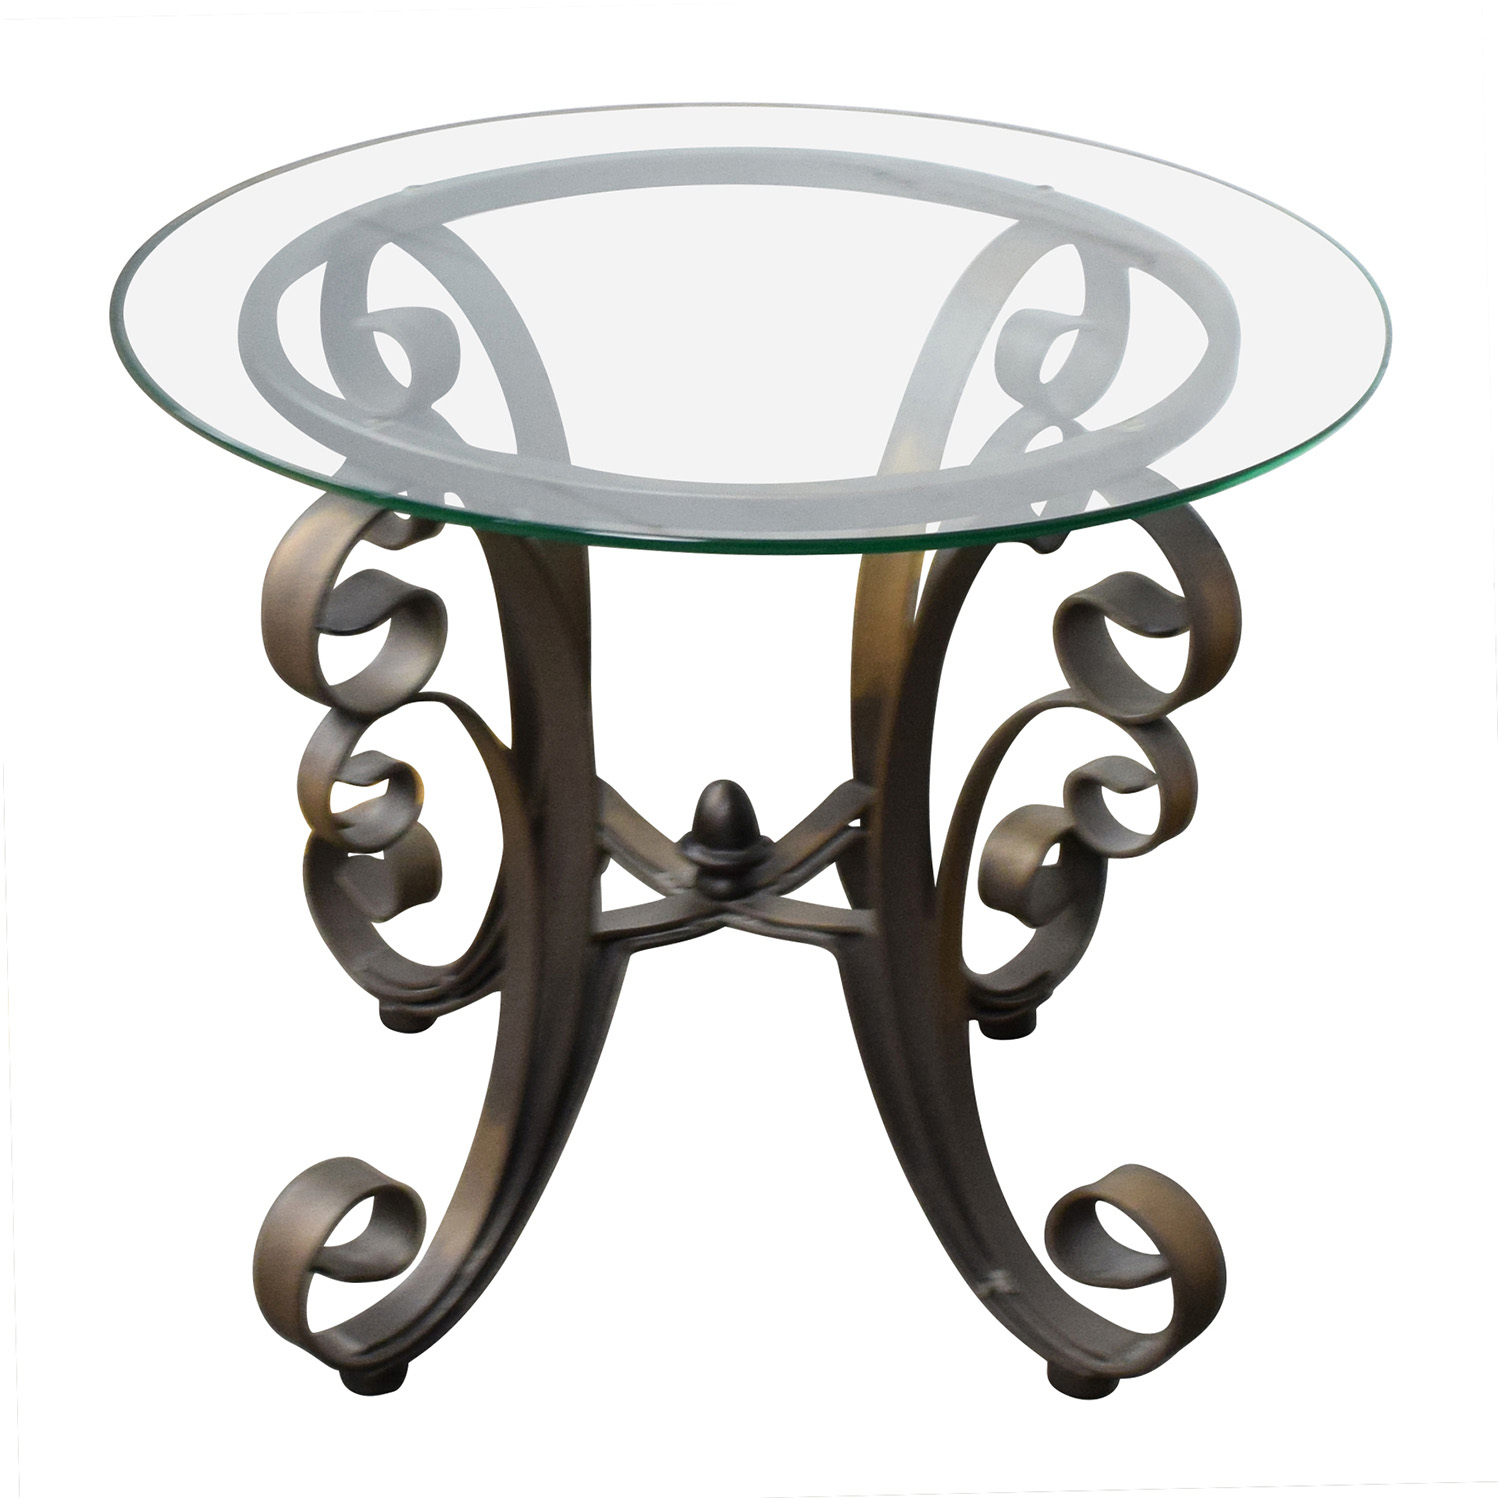 Metal Glass End Tables 90 Off Rooms To Go Rooms To Go Bronze Metal Base With Glass Top Side Table Tables